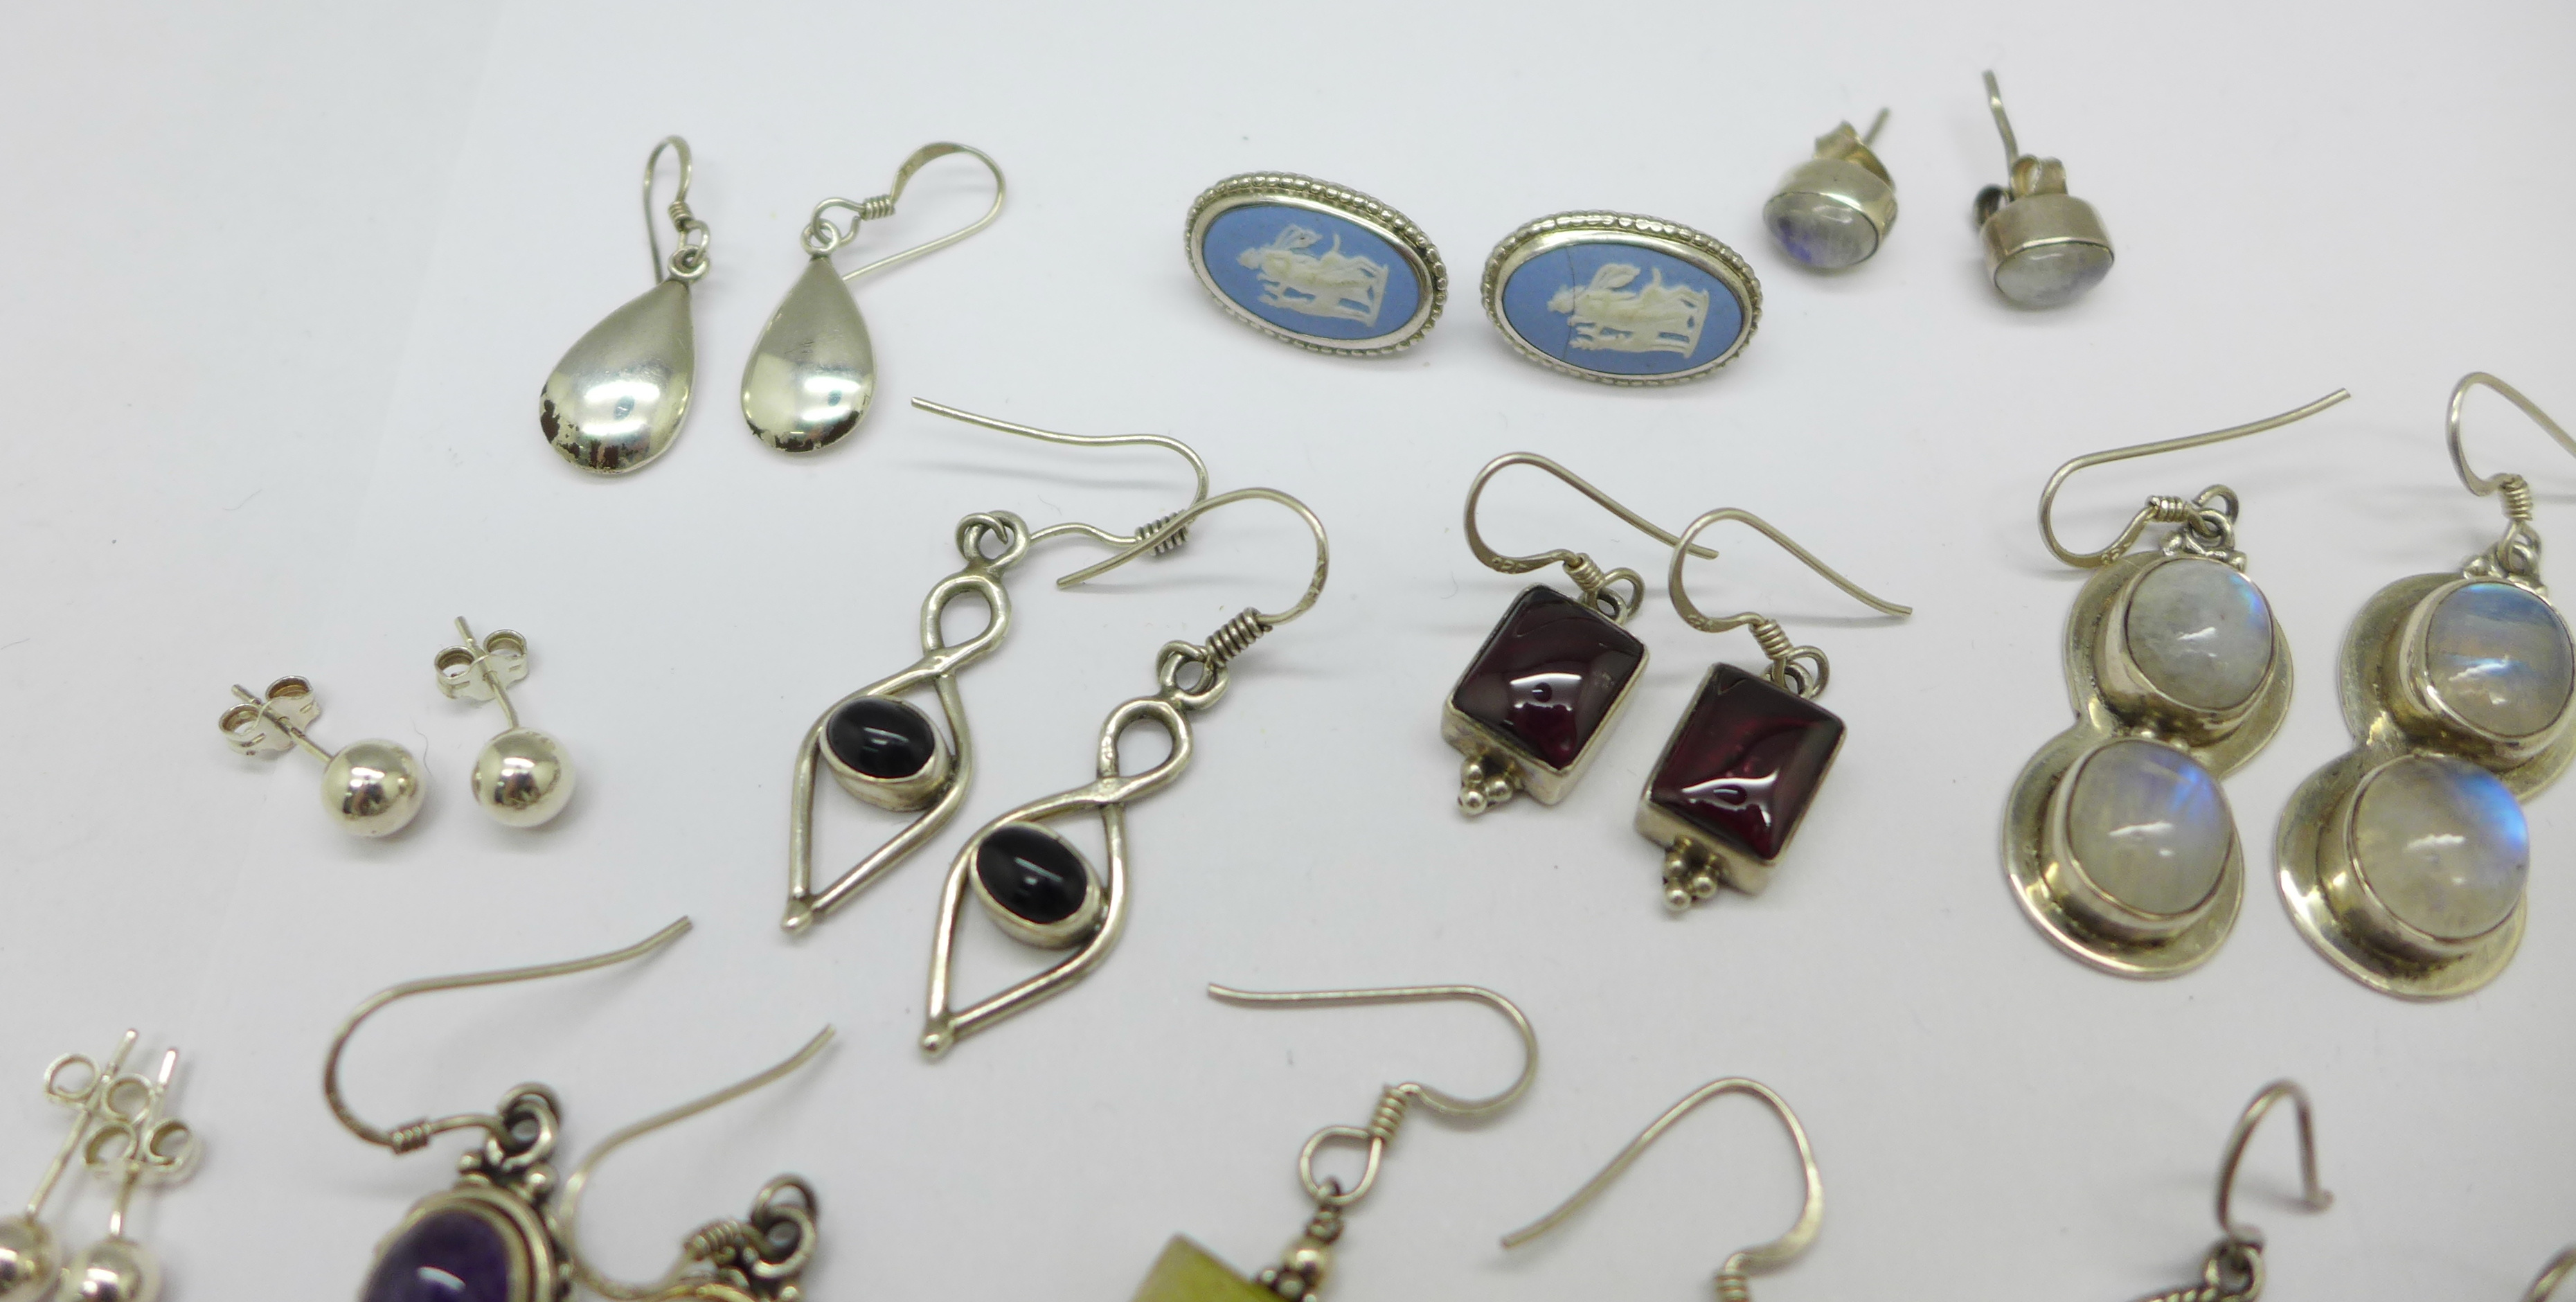 Fifteen pairs of silver and stone set earrings, total weight 60g - Image 2 of 4